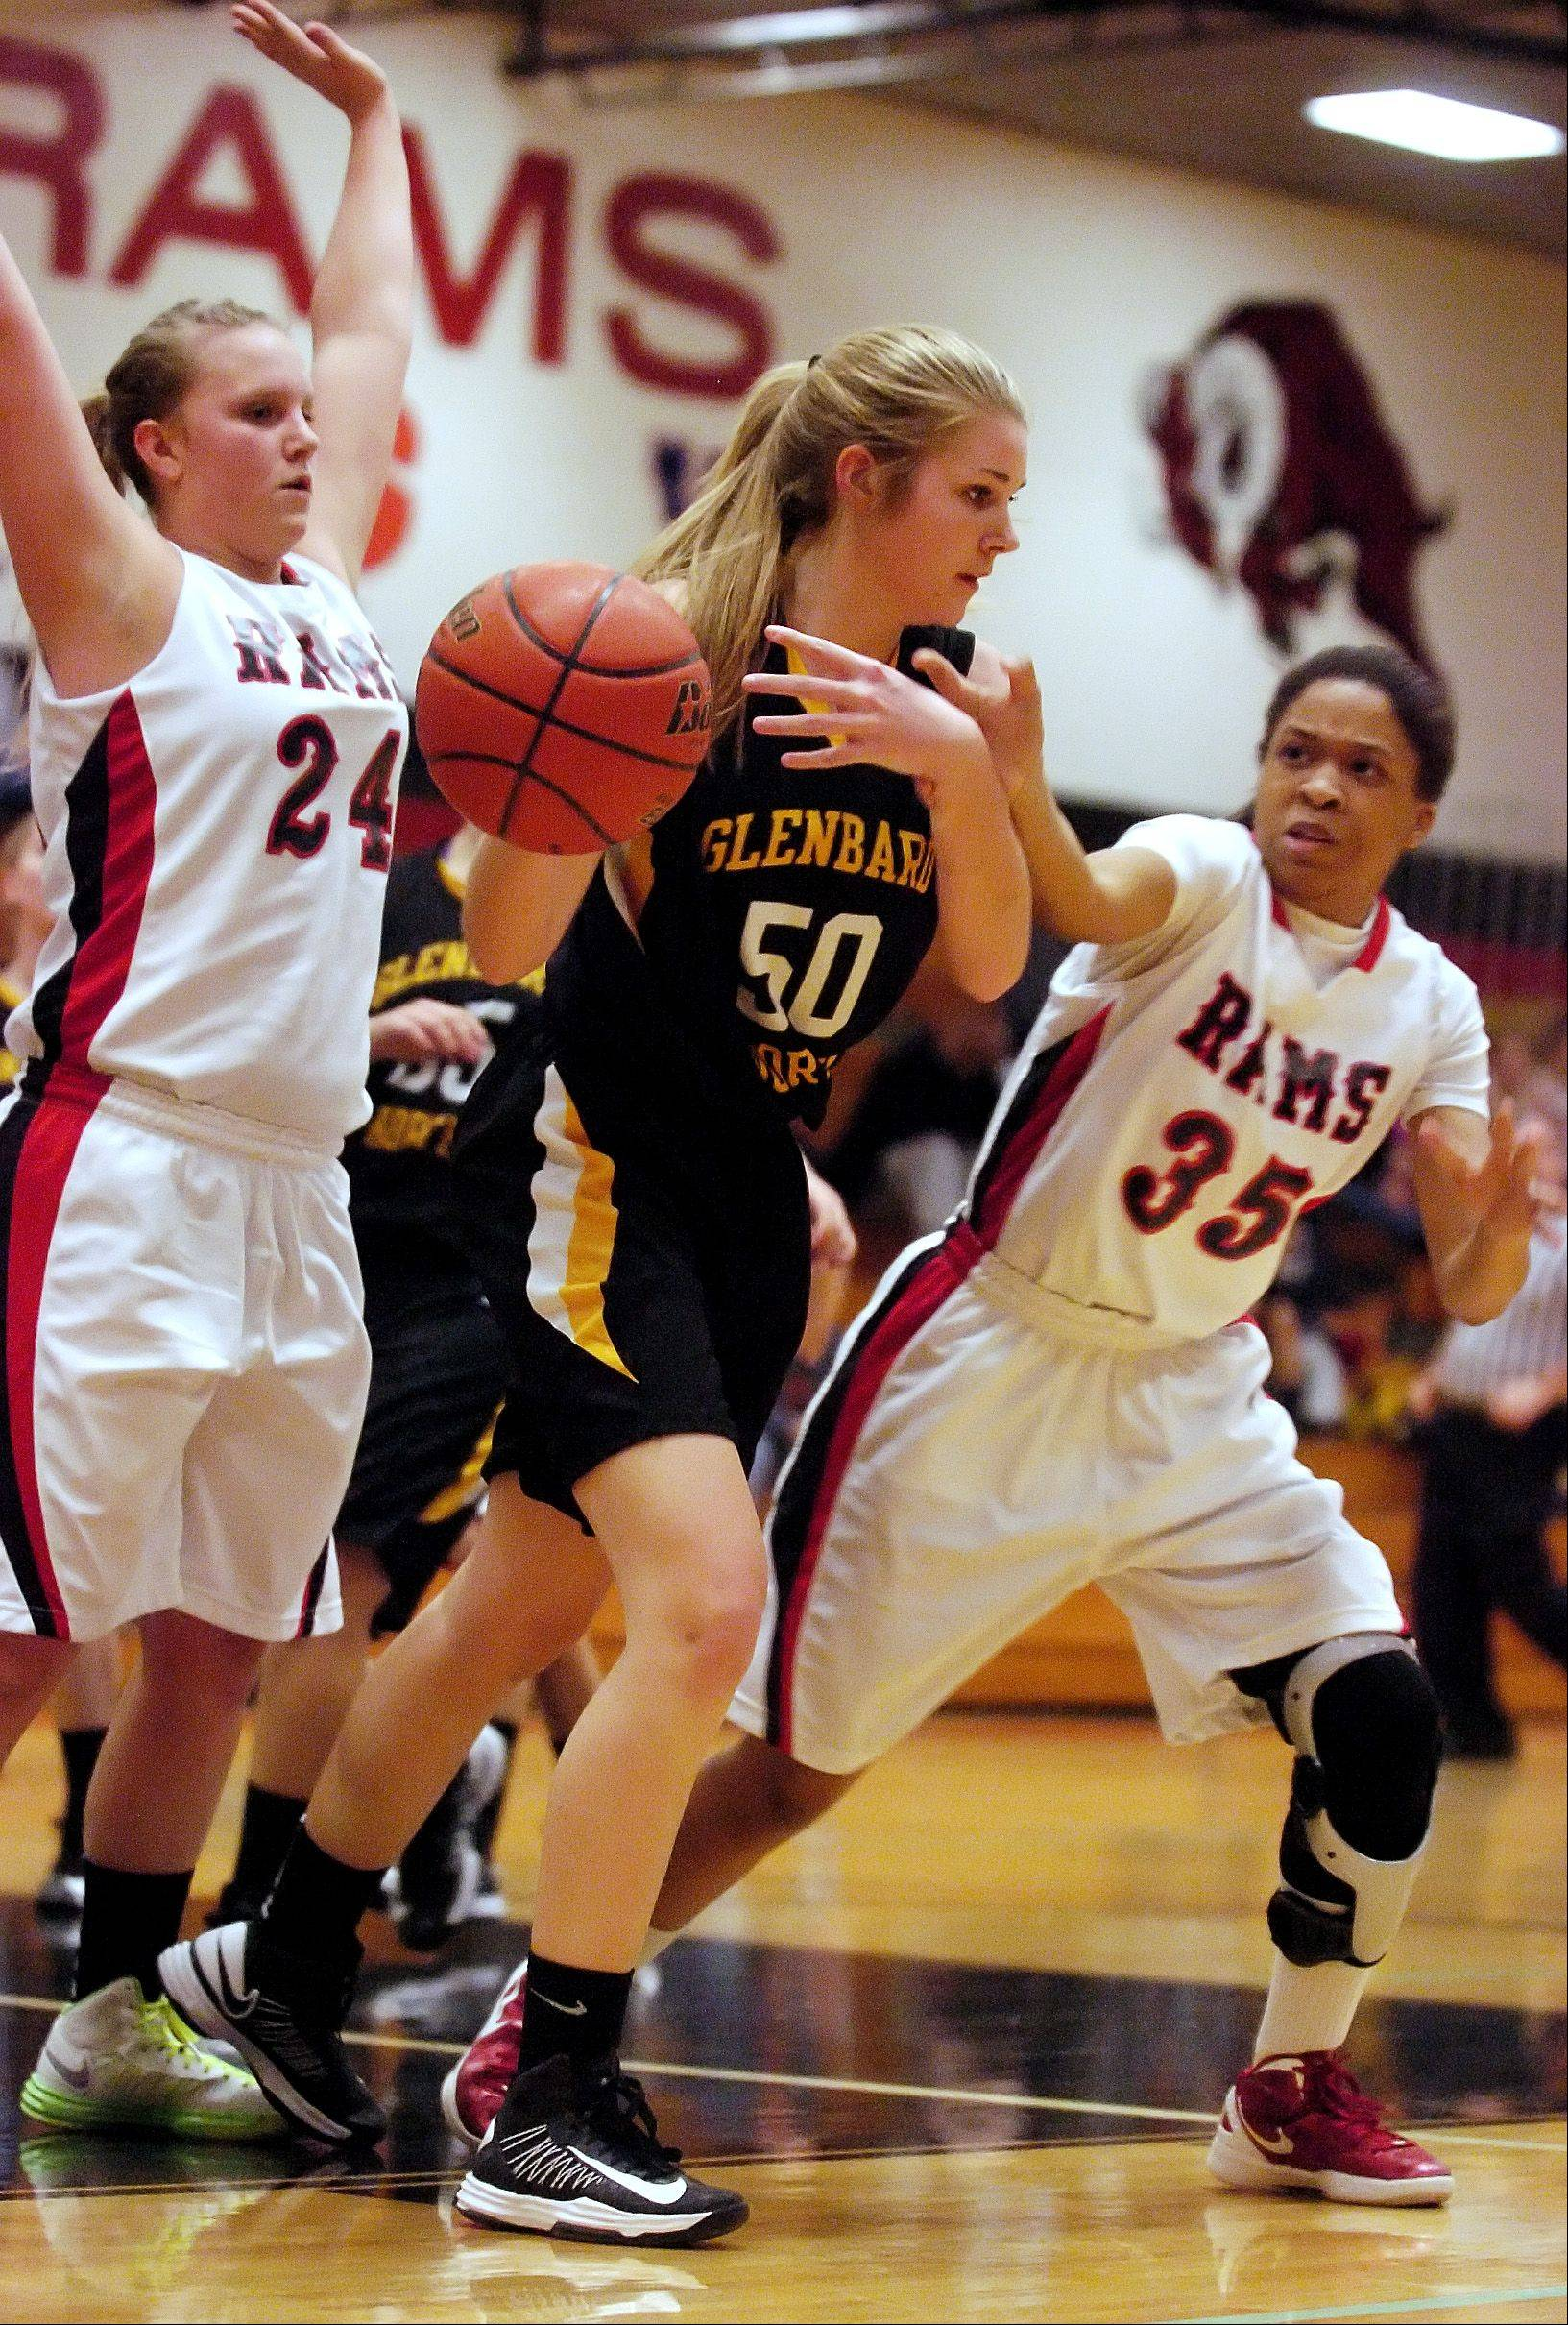 Caitlyn Deegan of Glenbard North works to get past Rachael Leifheit and Teaira Miller of Glenbard East.